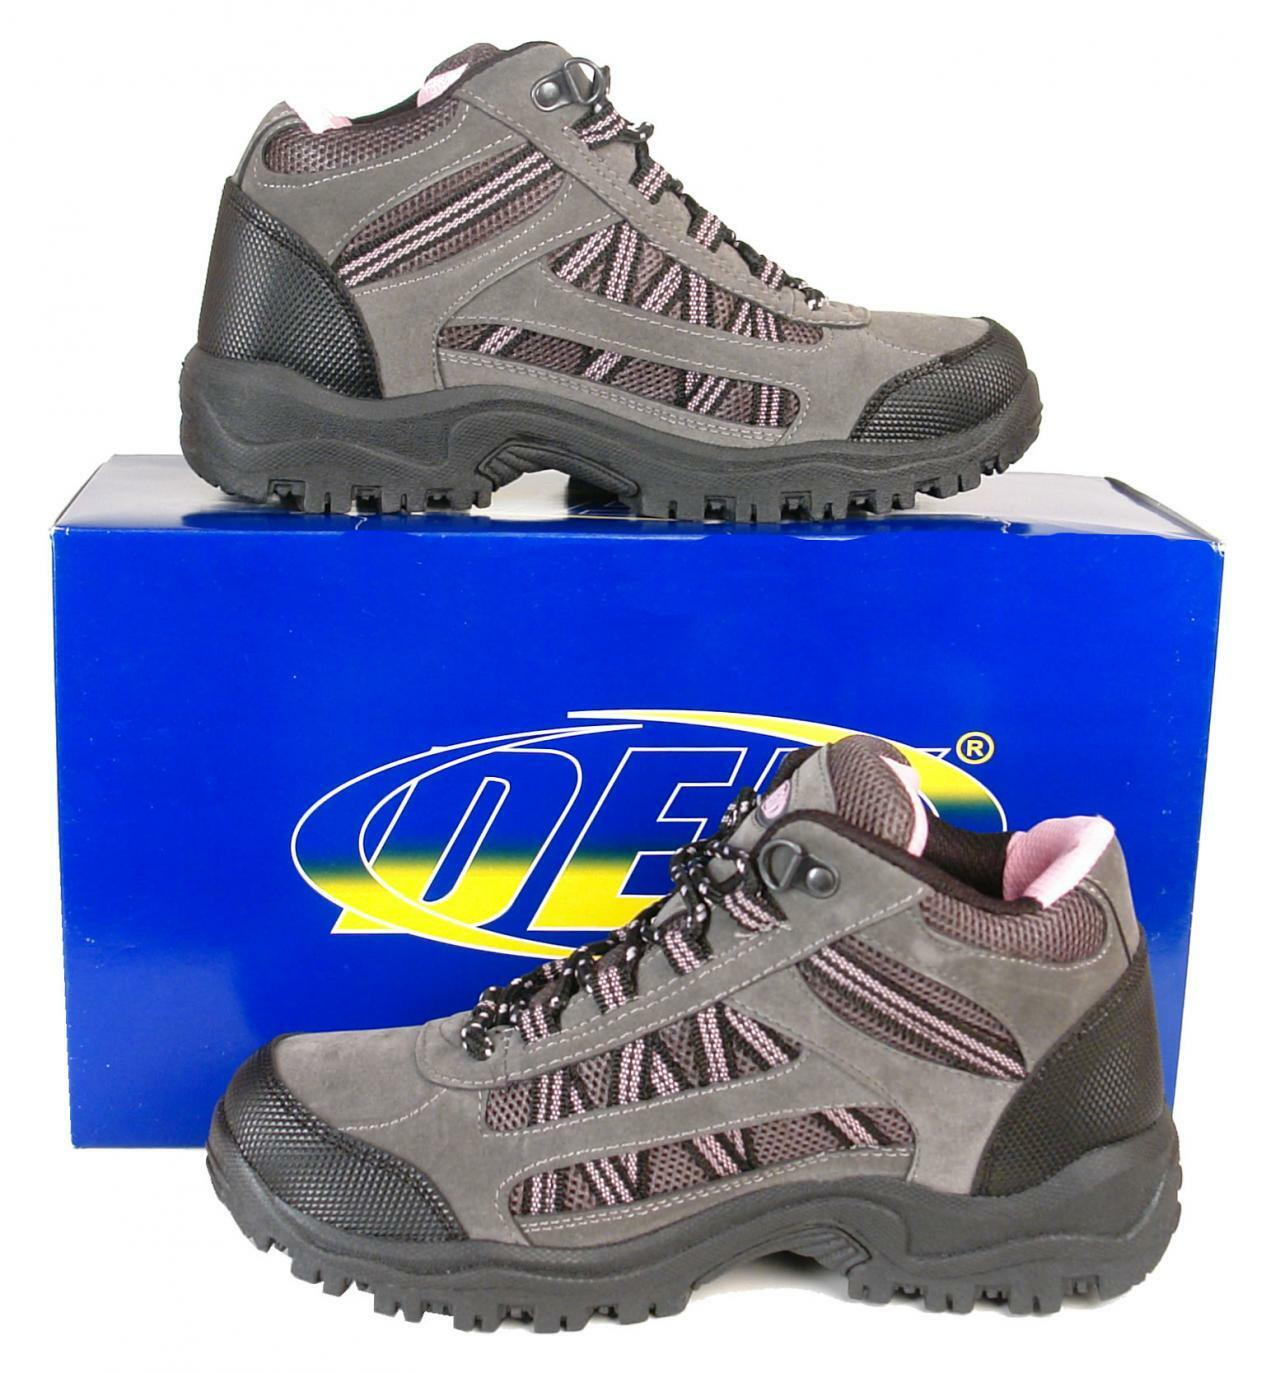 Womens / Ladies New Hiking Walking Boots Size UK 3 4 5 6 7 8 FREE SHIPPING